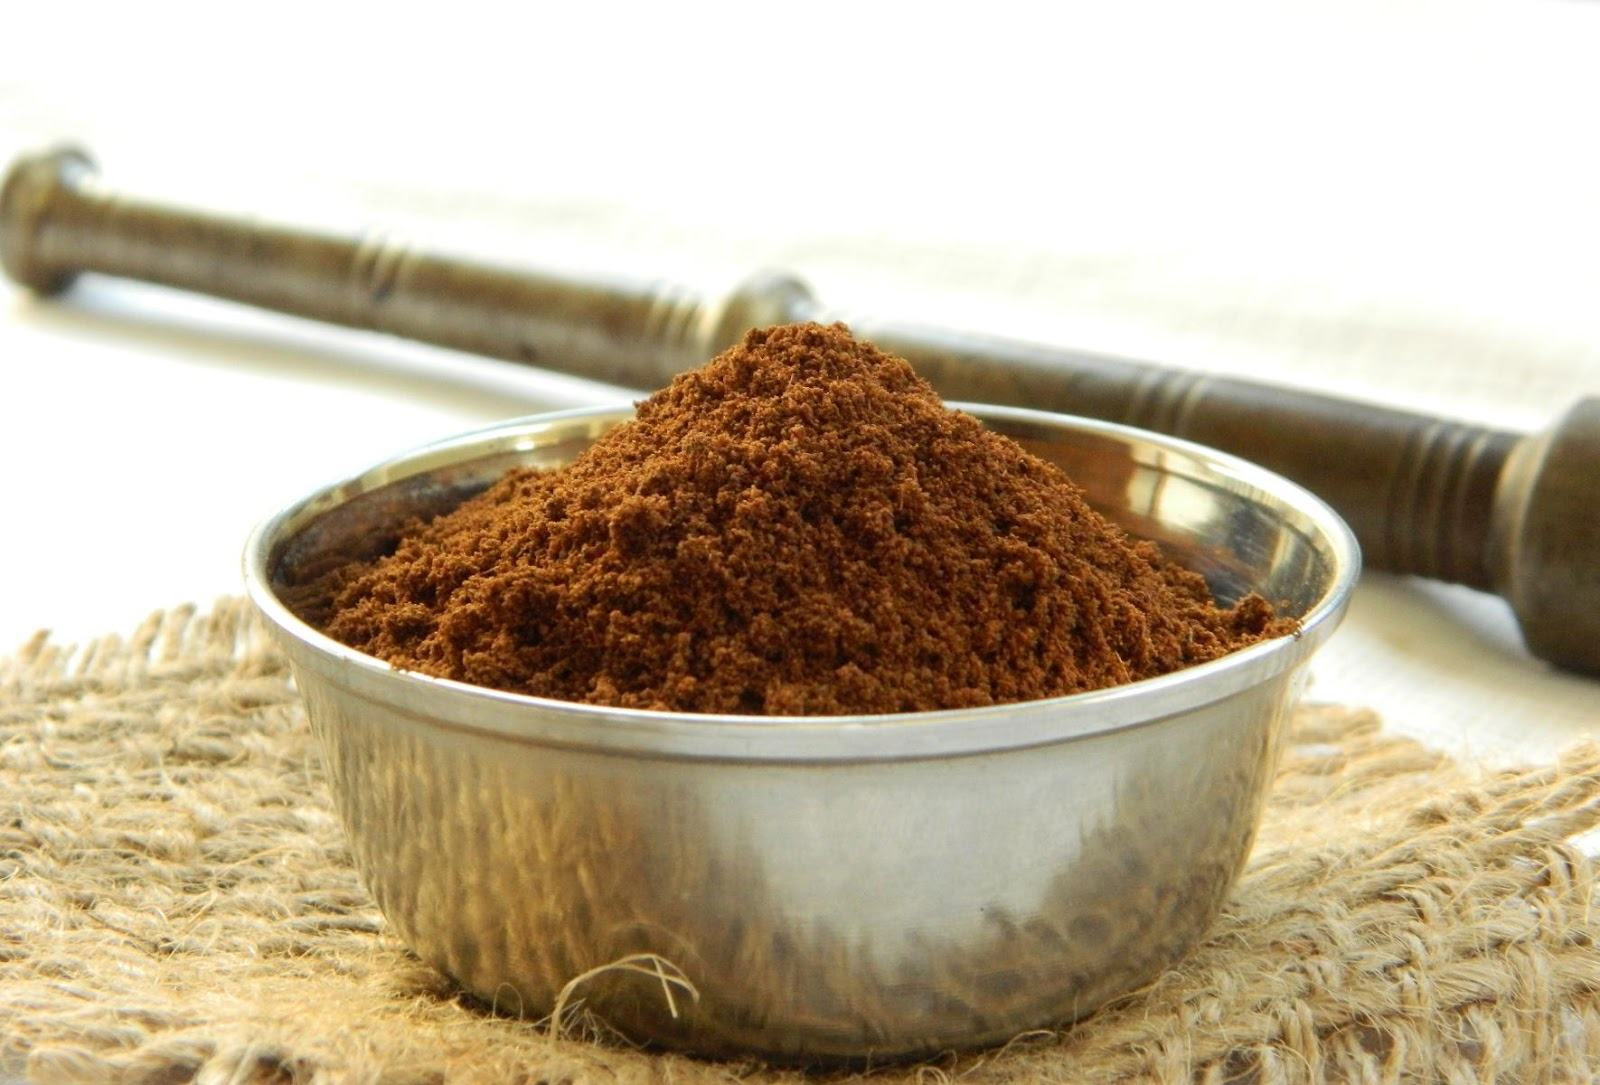 ... : How to Make Roasted Cumin Powder at Home | Homemade Jeera Powder